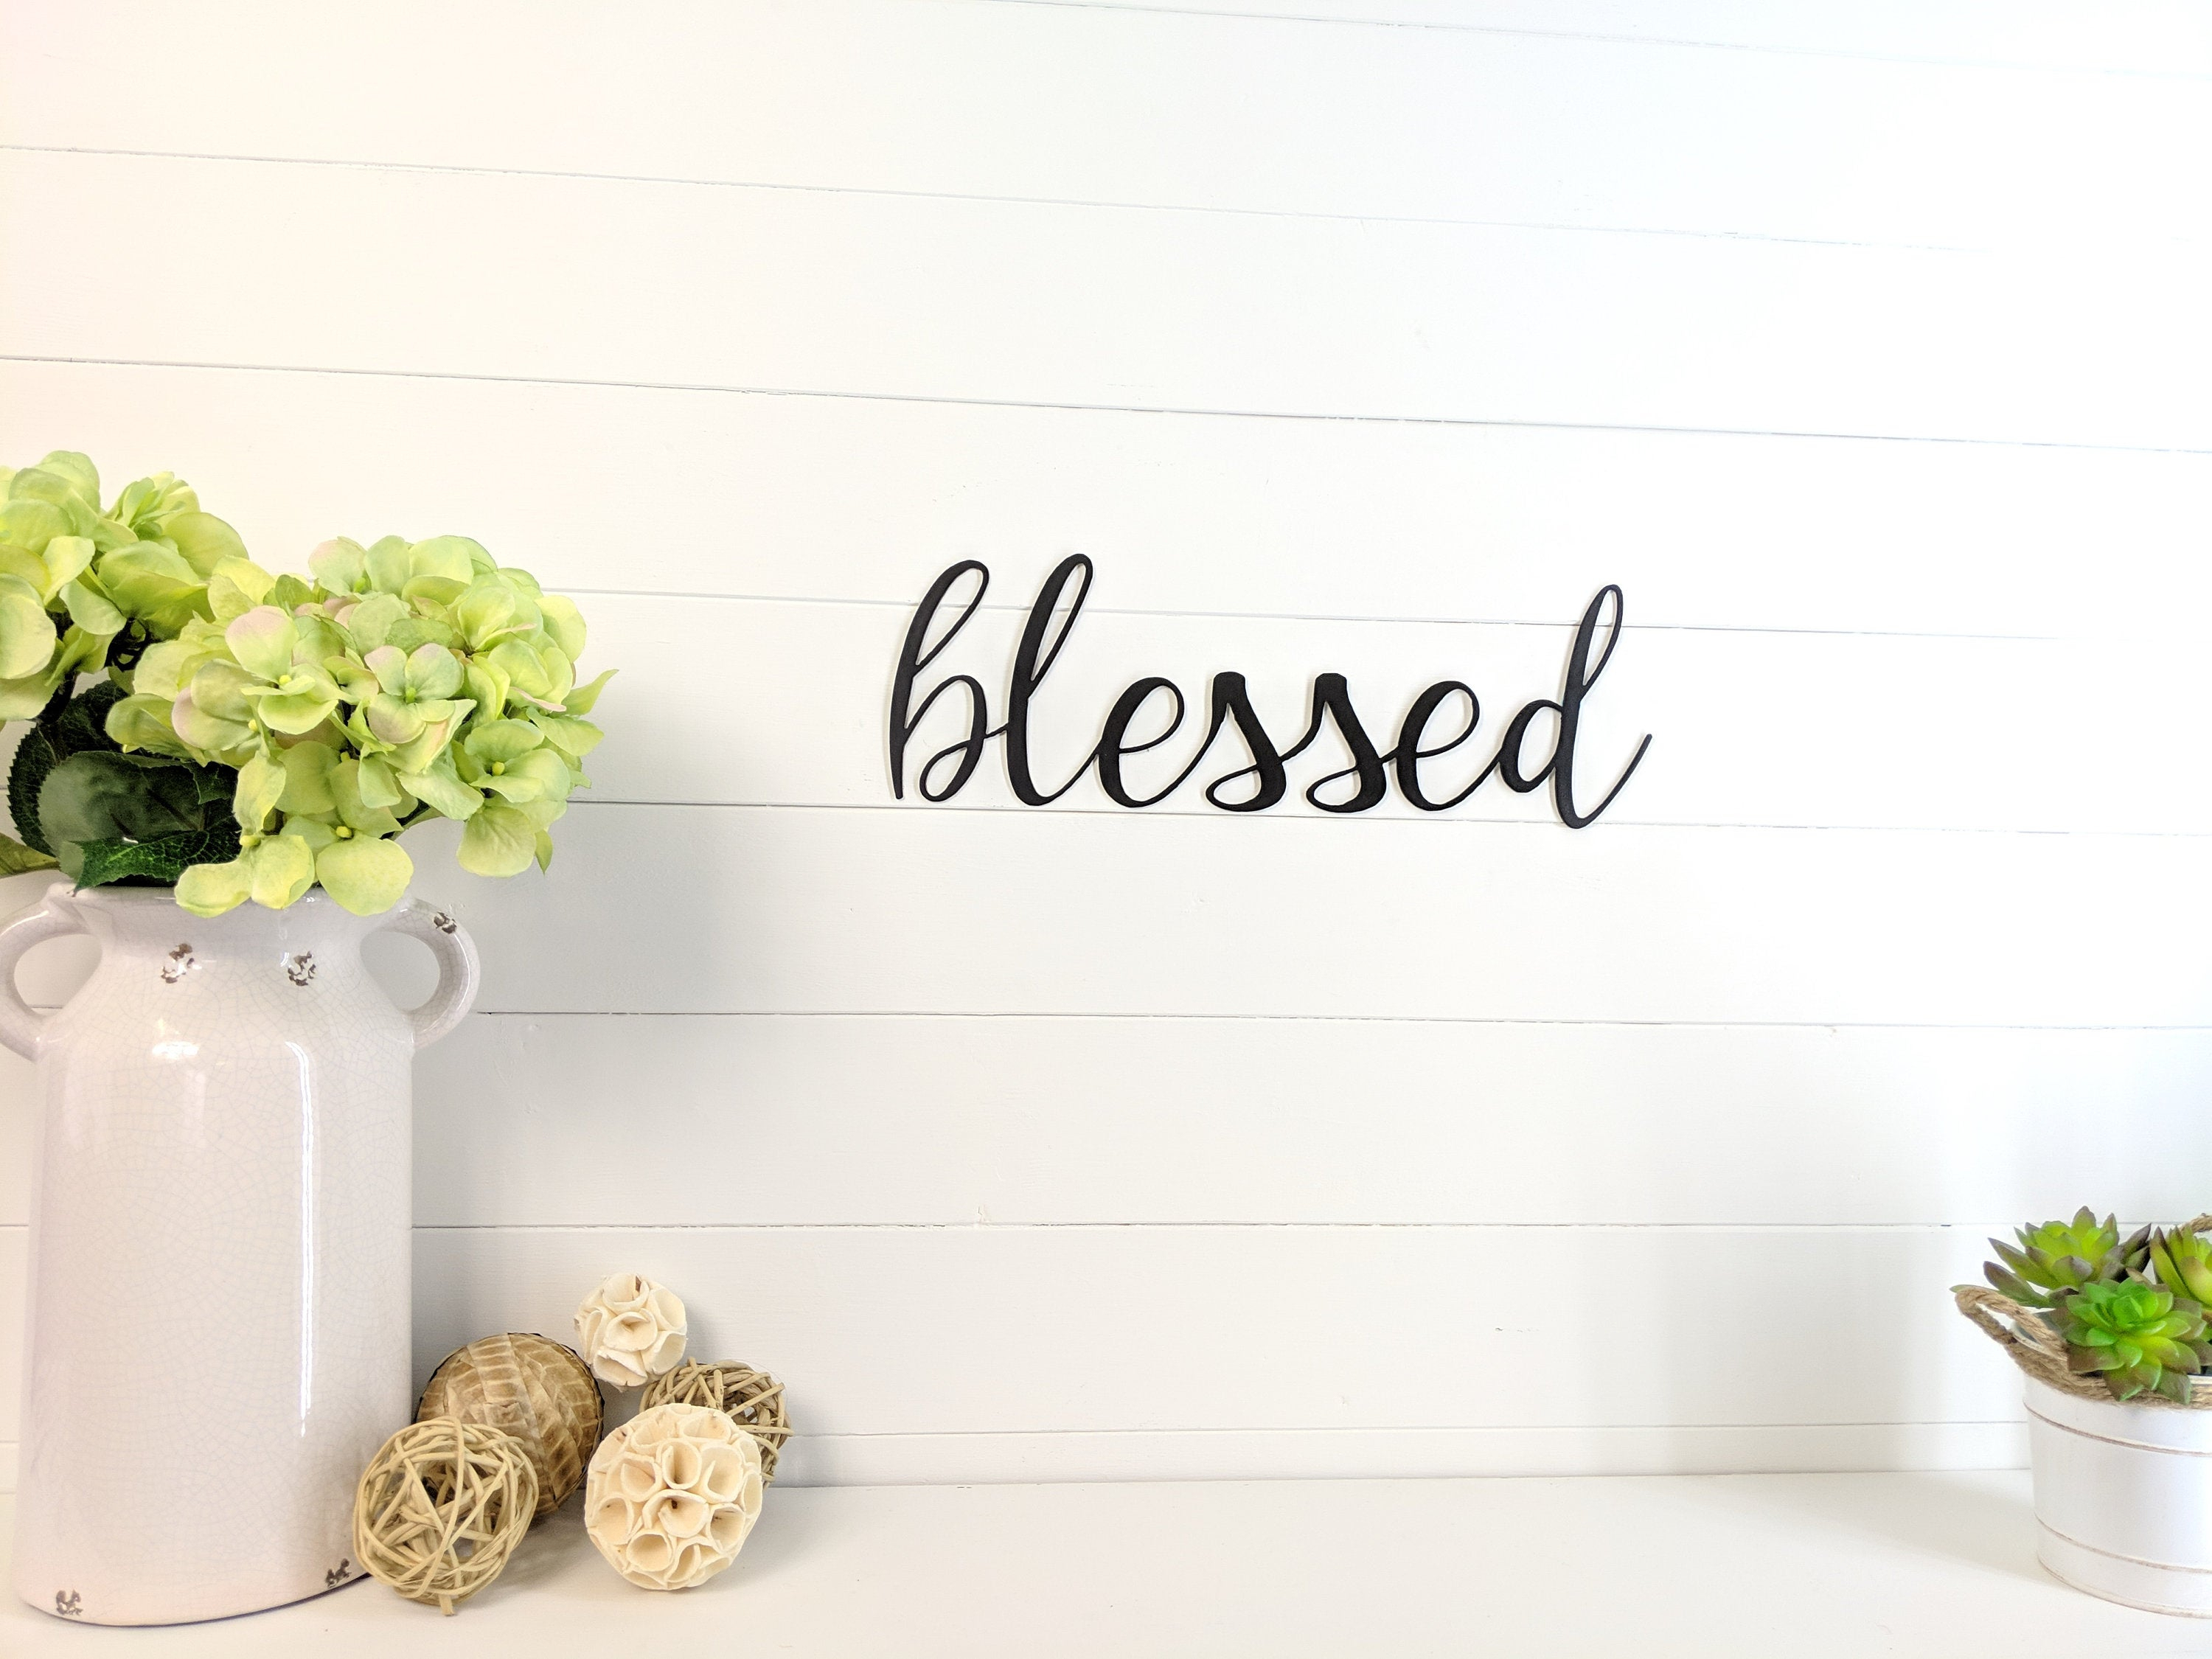 Blessed Metal Wall Art Sign Decor Cursive Font Shipping Included With Regard To Blessed Steel Wall Decor (View 4 of 30)